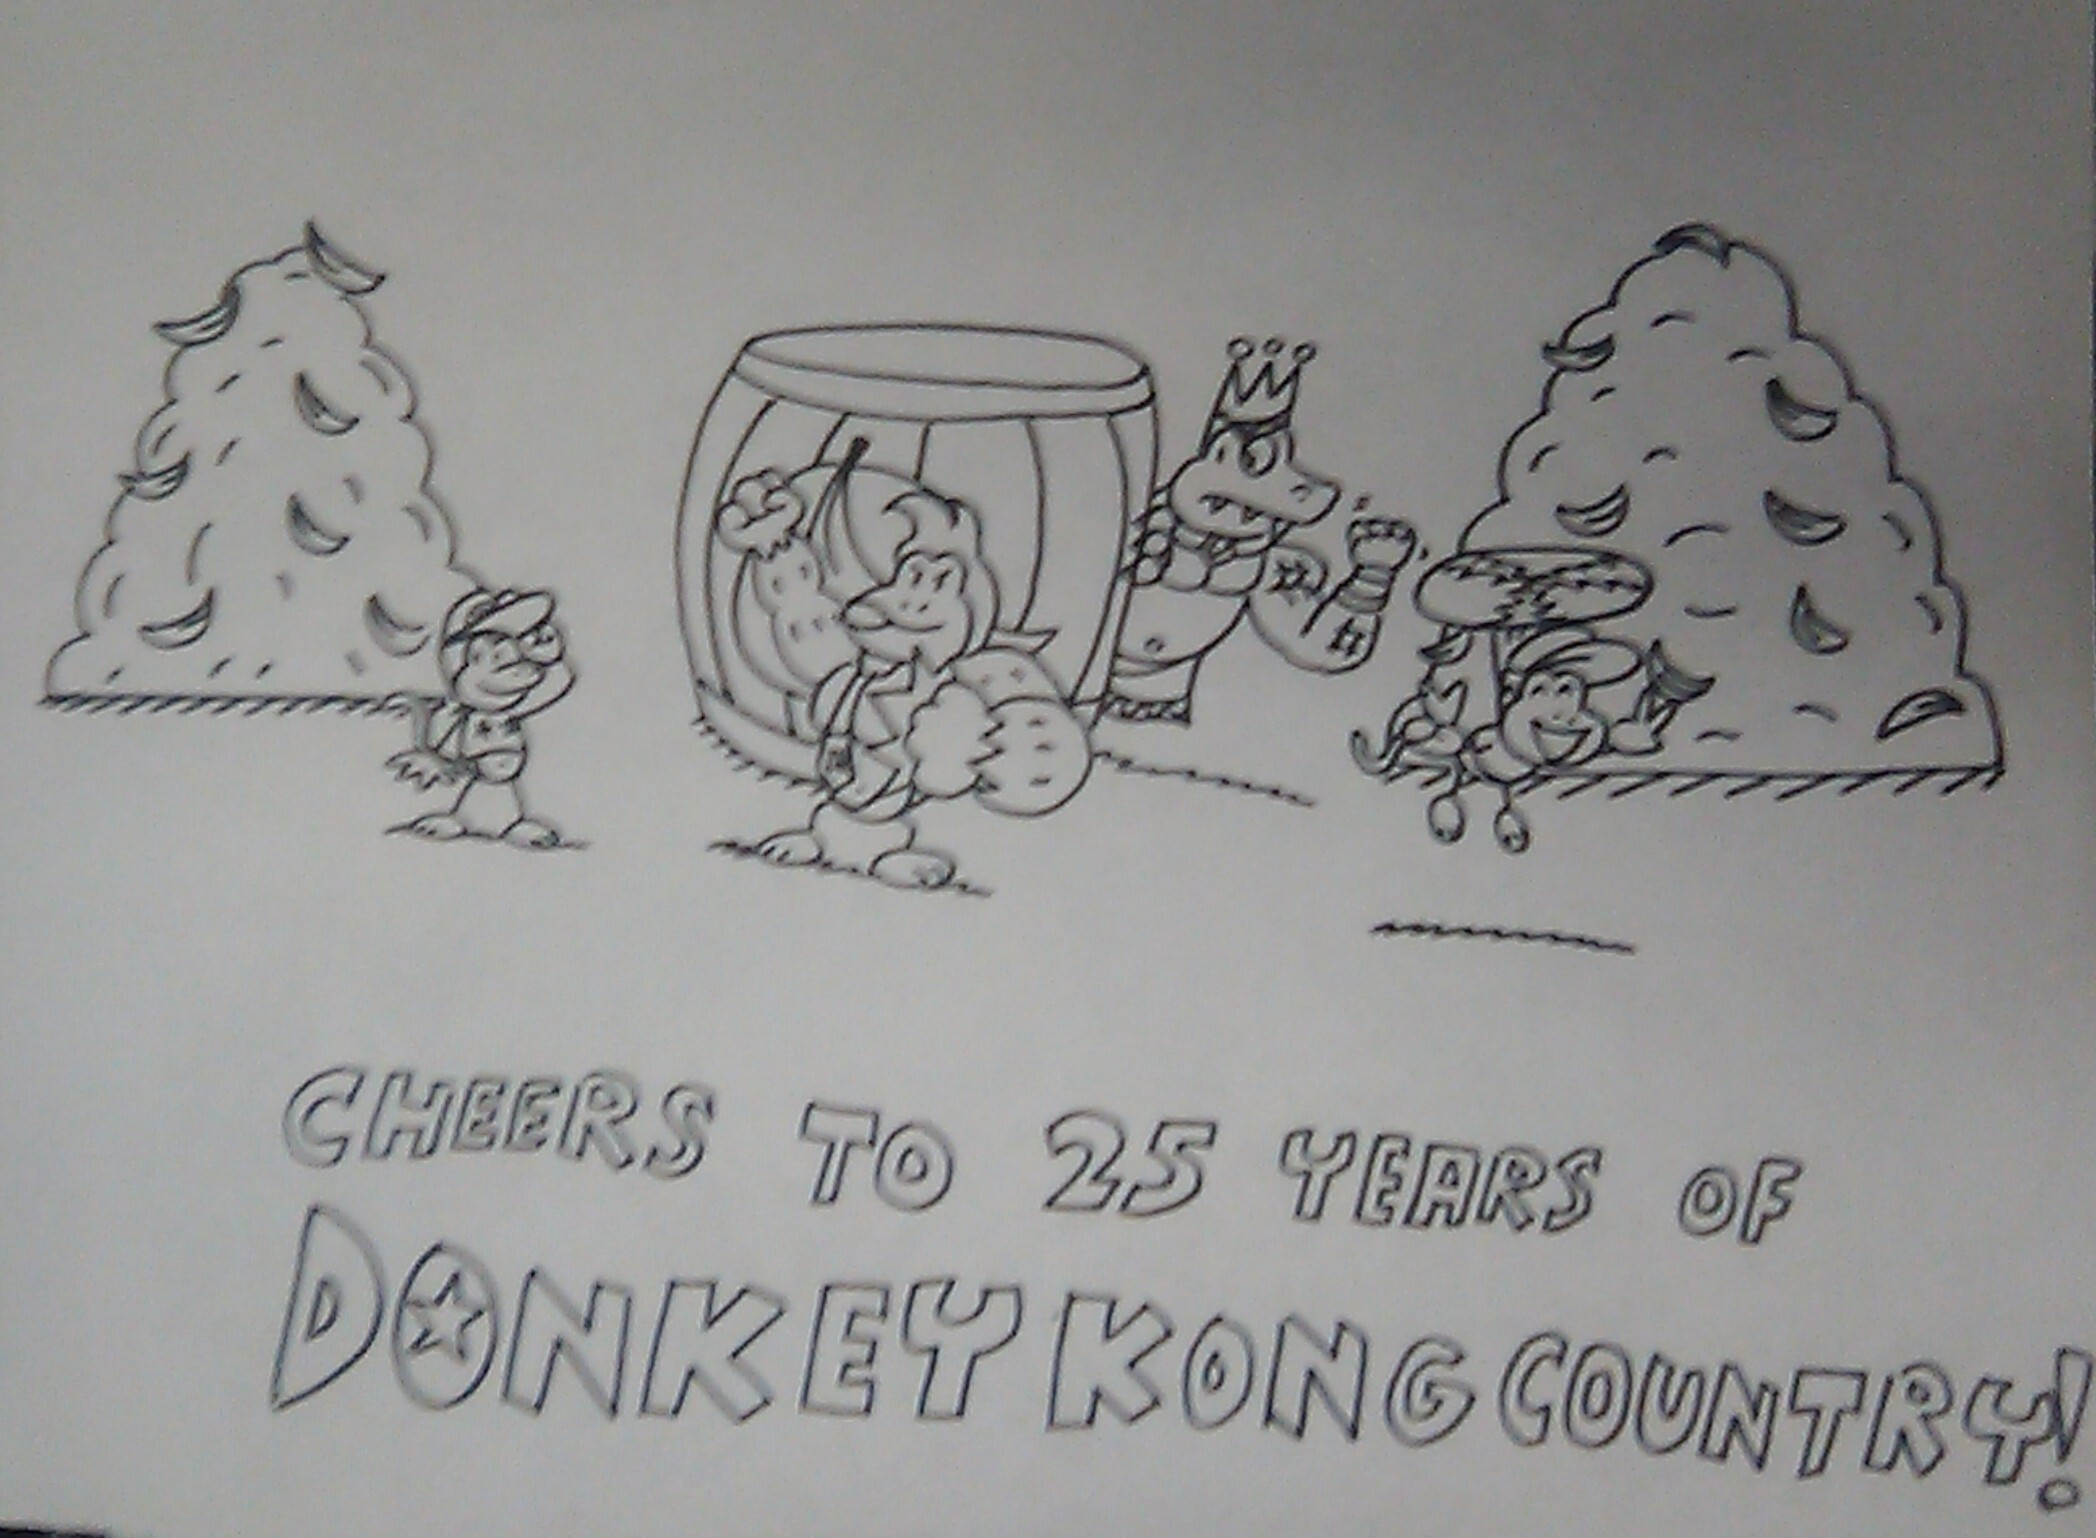 Donkey Kong Country 25th Anniversary